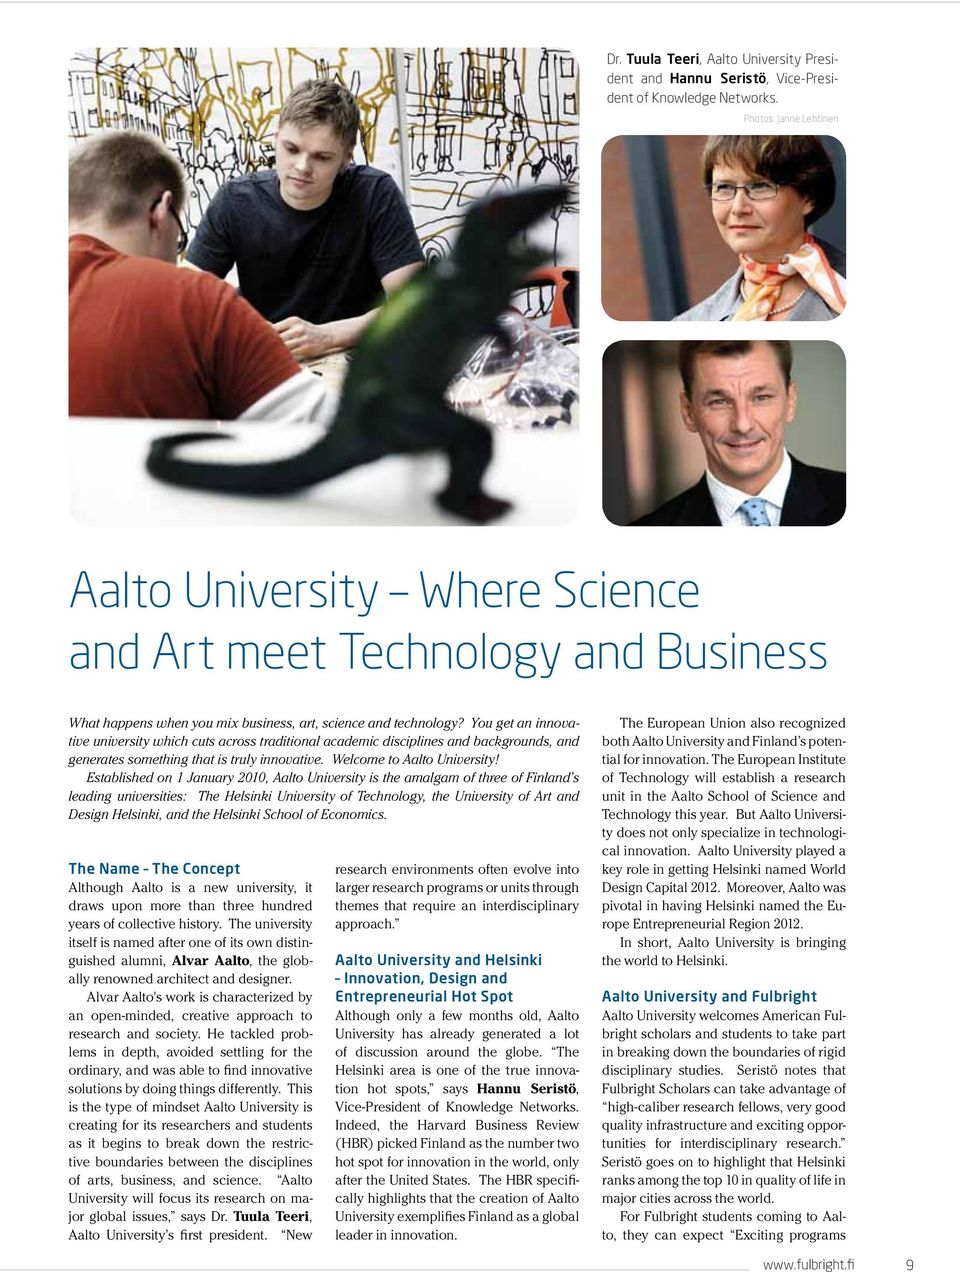 You get an innovative university which cuts across traditional academic disciplines and backgrounds, and generates something that is truly innovative. Welcome to Aalto University!